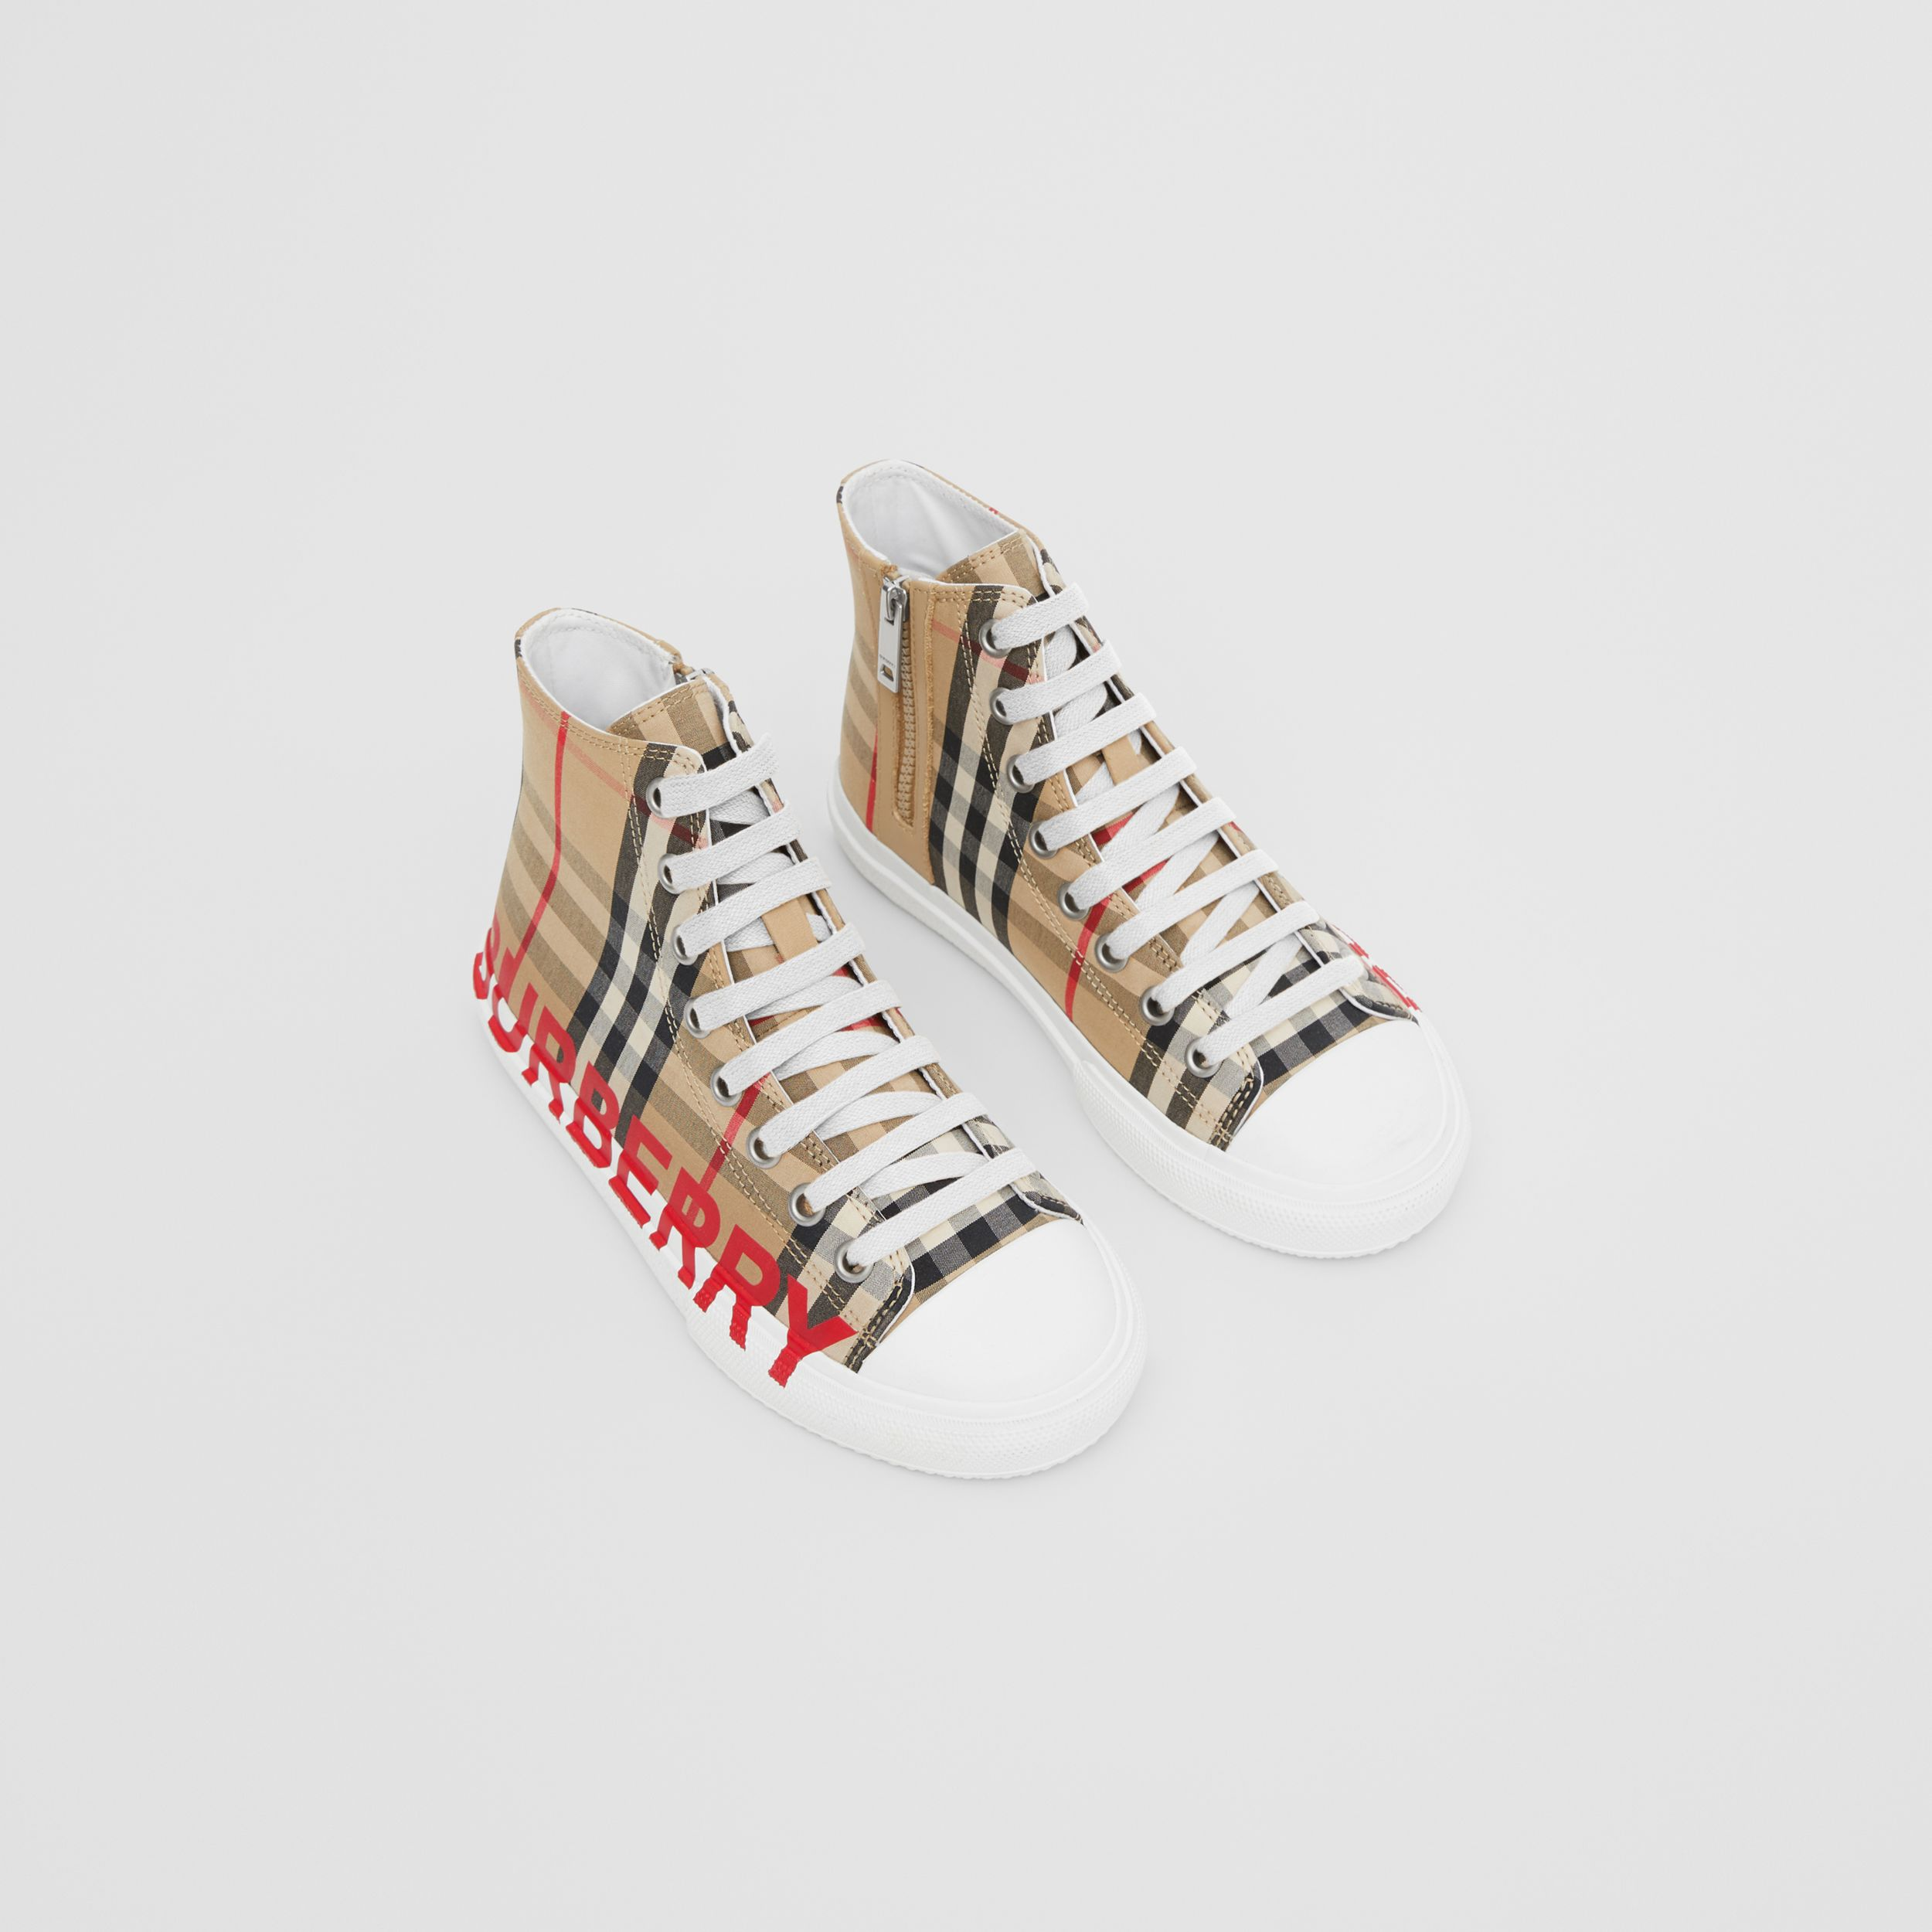 Logo Print Vintage Check High-top Sneakers in Archive Beige - Children | Burberry Hong Kong S.A.R. - 1